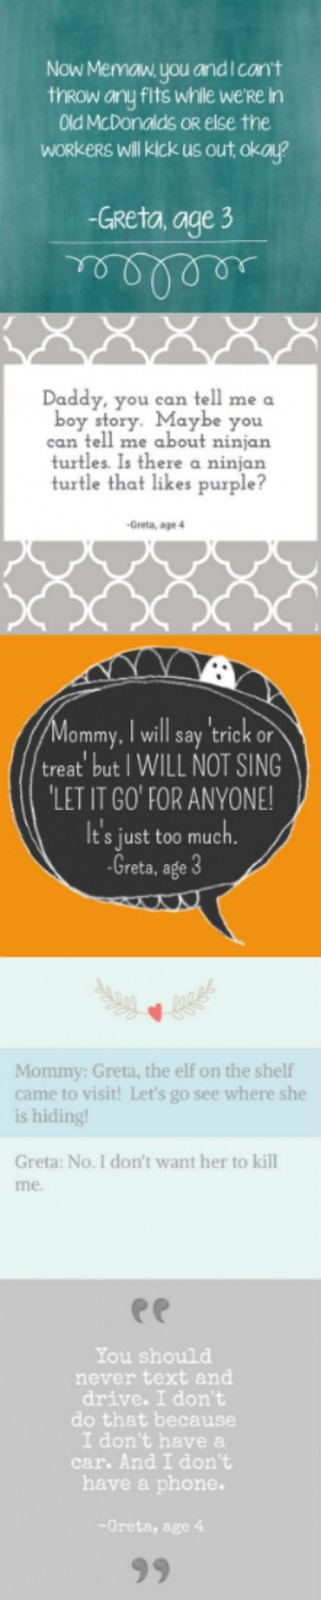 cool-daughter-quote-mother-coverjhj